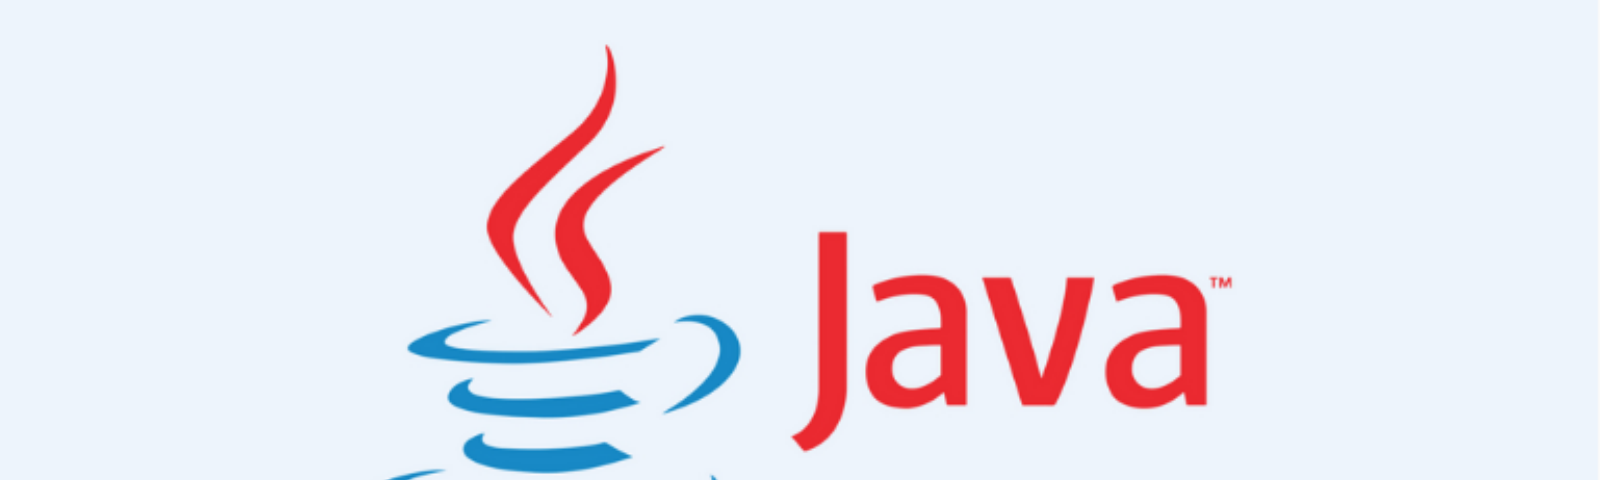 17 Popular Java Frameworks [2019 edition]: Pros, cons, and